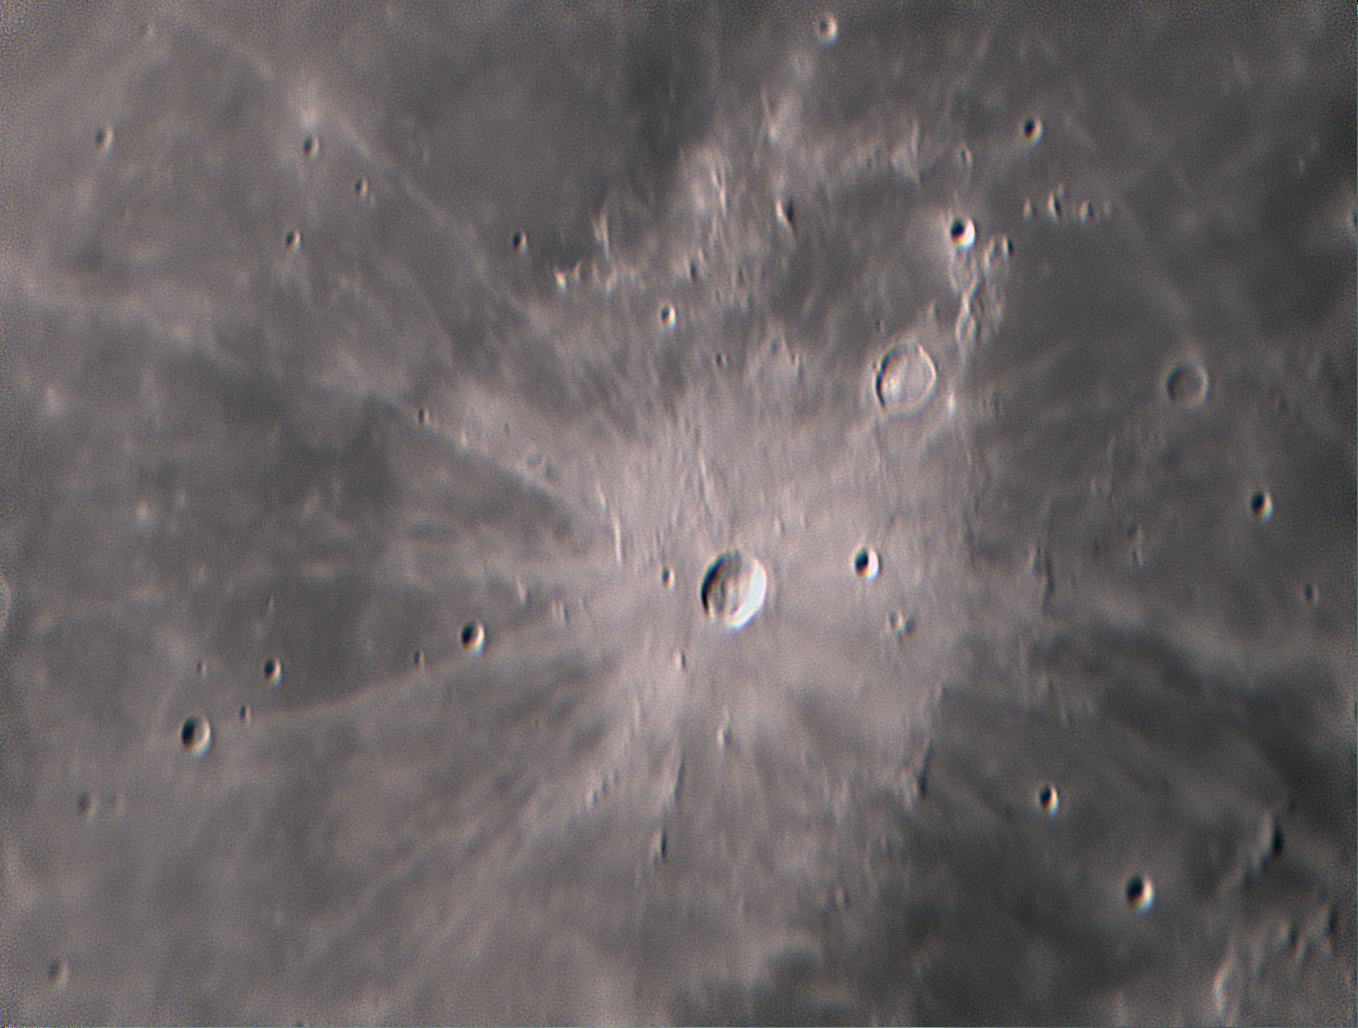 The bright ray crater Kepler, as imaged with ZWO 224ASI camera the night of a 46% illuminated waning moon.